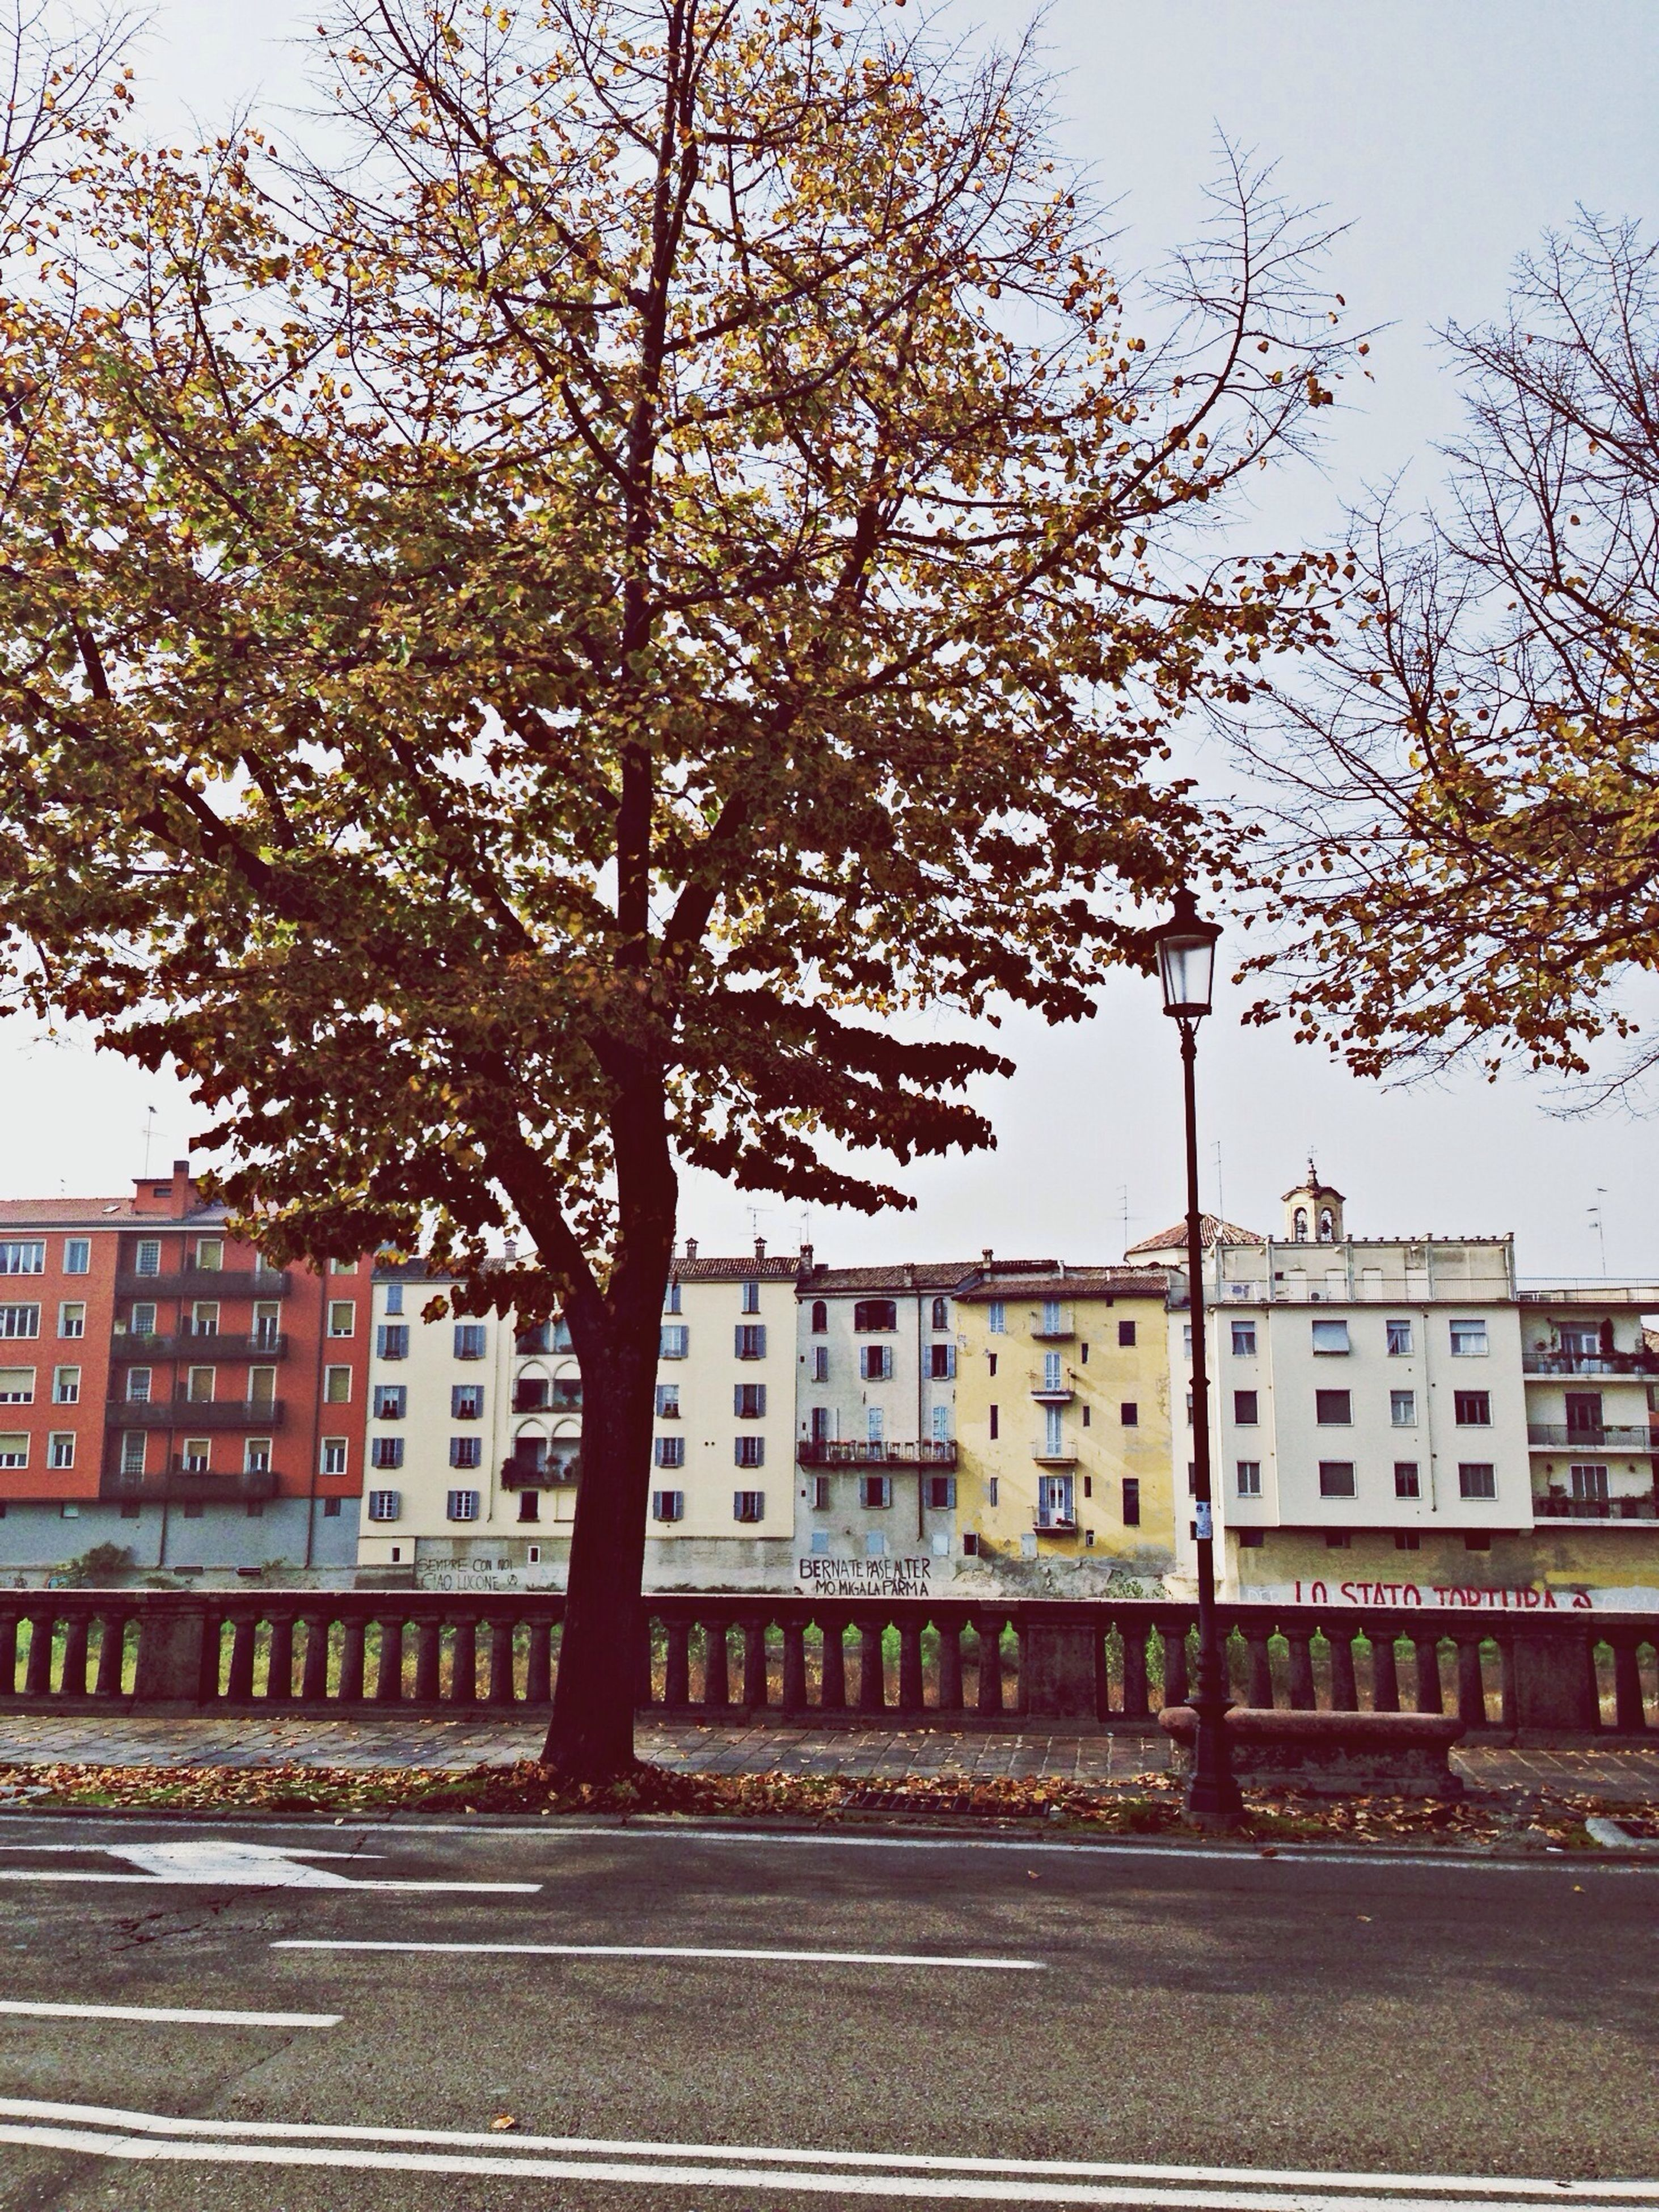 building exterior, architecture, built structure, tree, city, transportation, bare tree, street, road, clear sky, car, branch, residential building, sky, residential structure, building, day, city life, outdoors, mode of transport